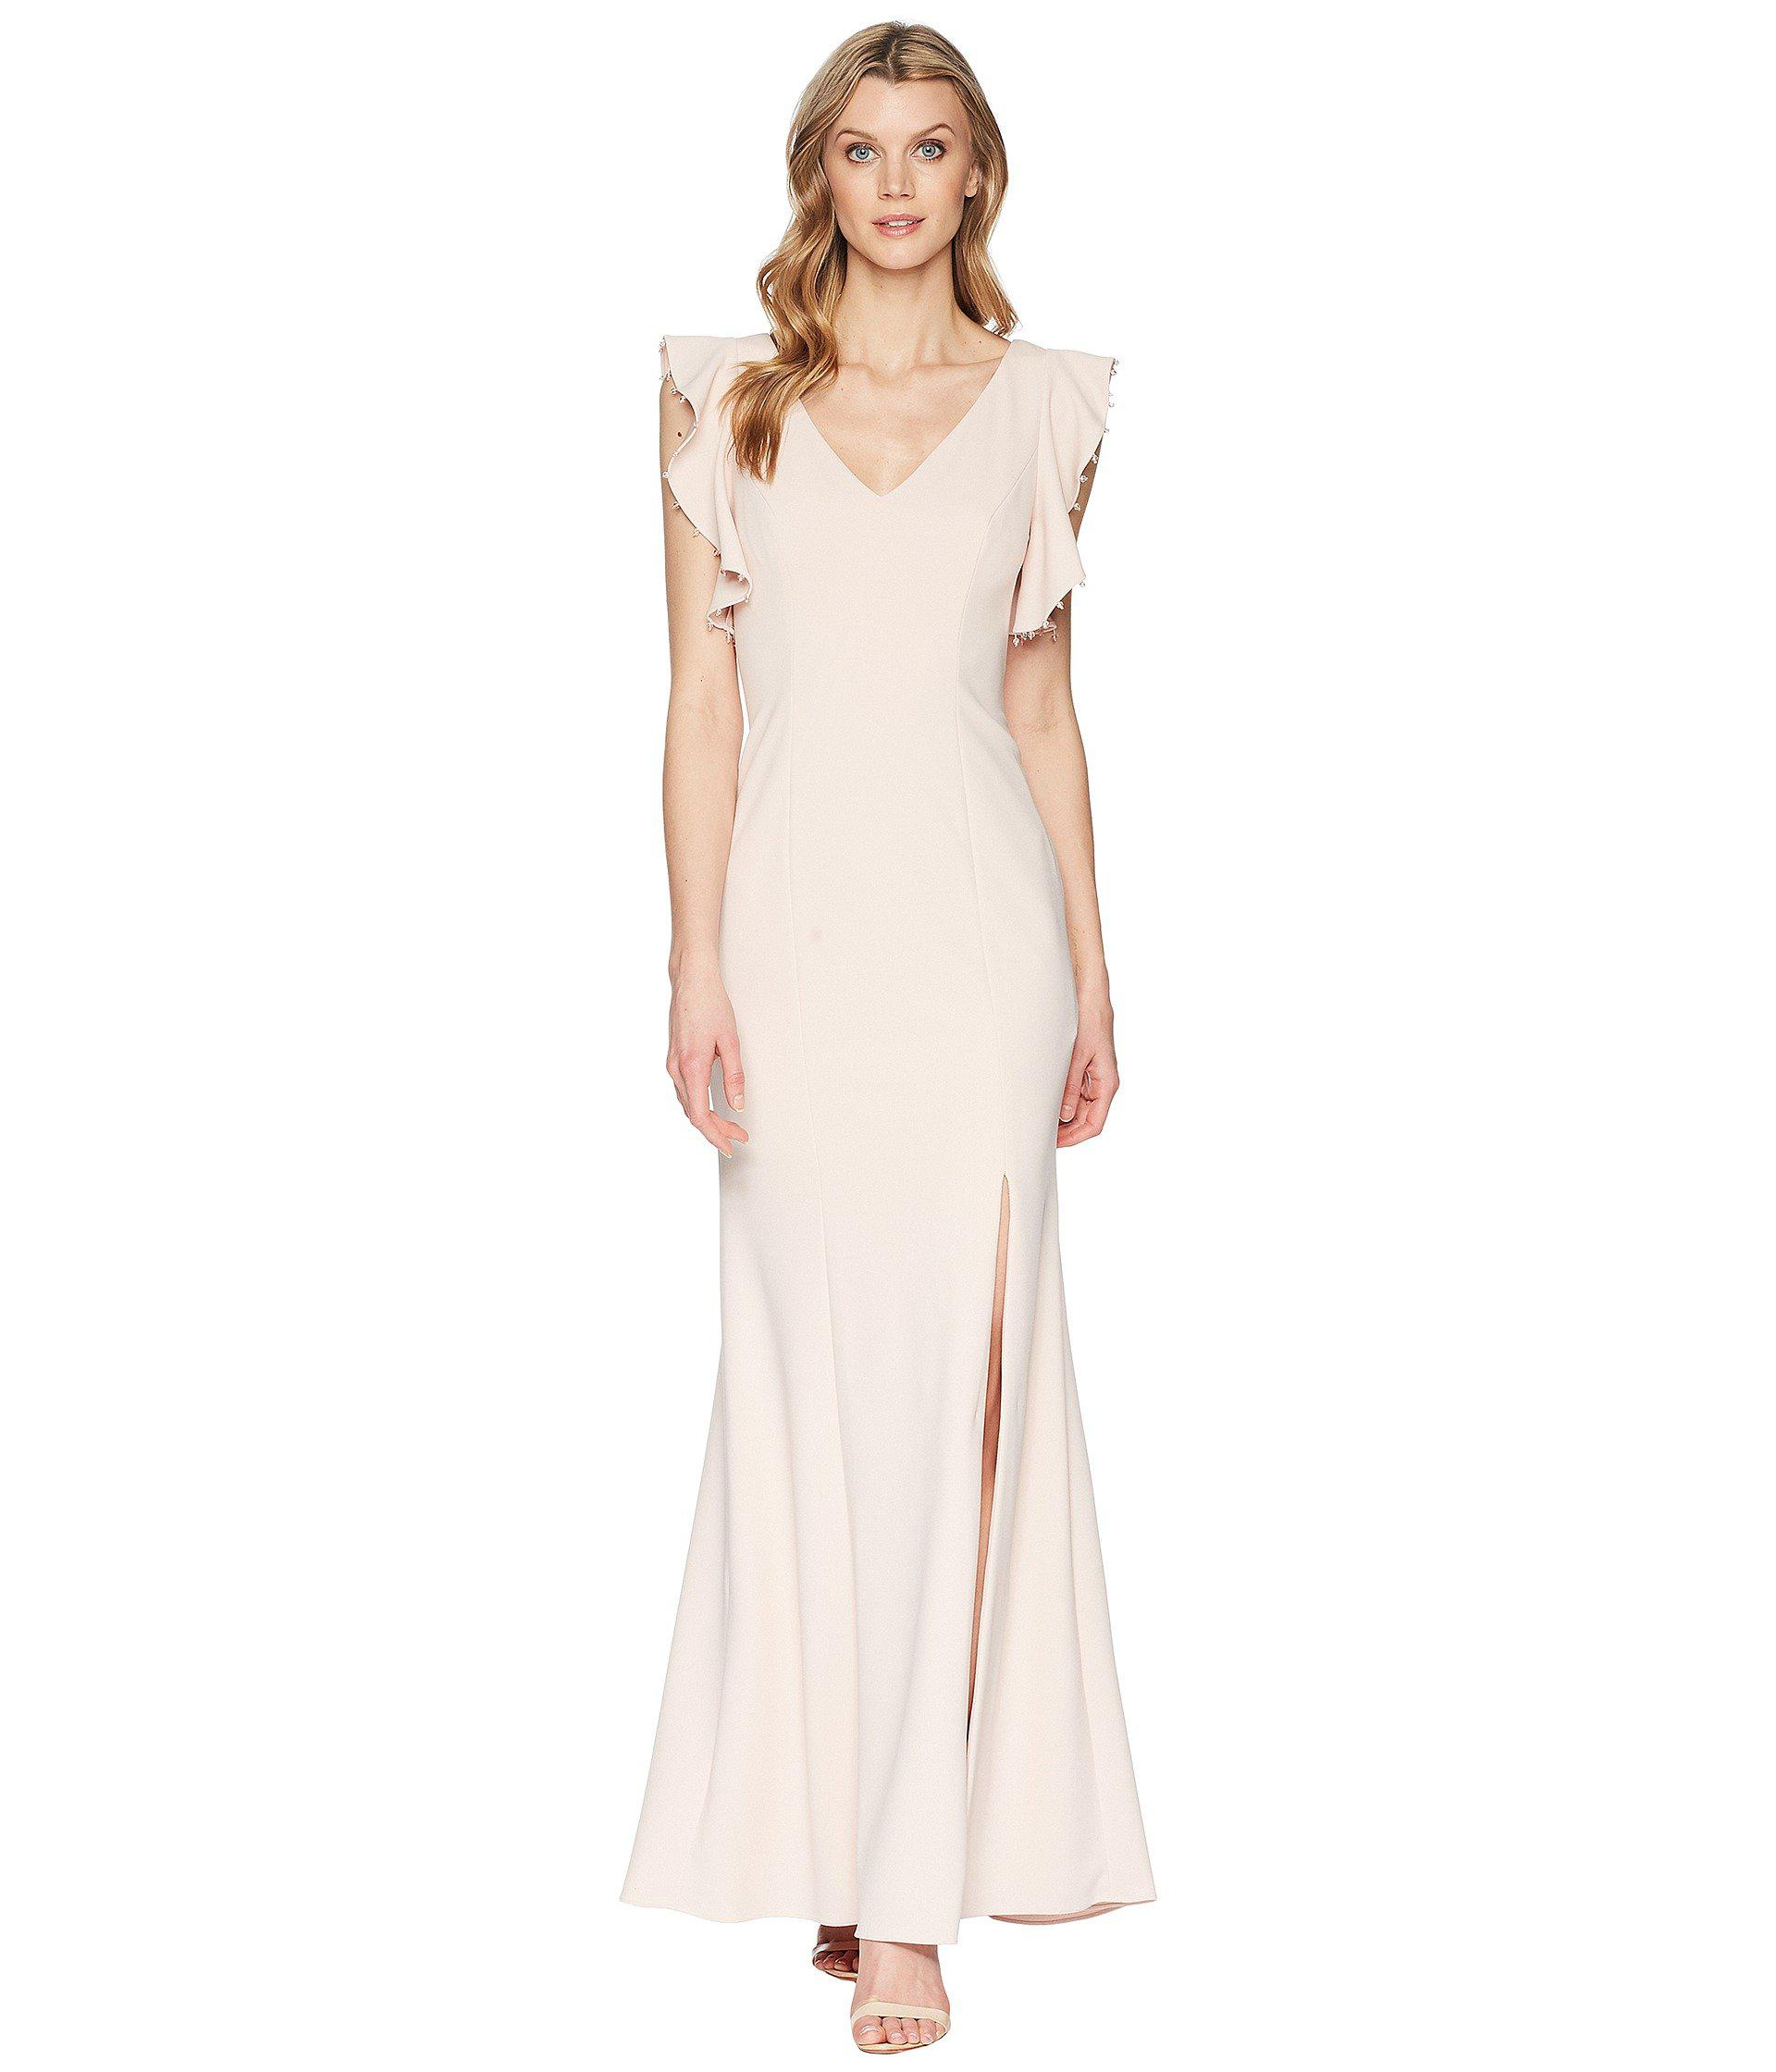 7d48068c3a845 Lyst - Adrianna Papell Long Crepe Dress in Pink - Save 11%